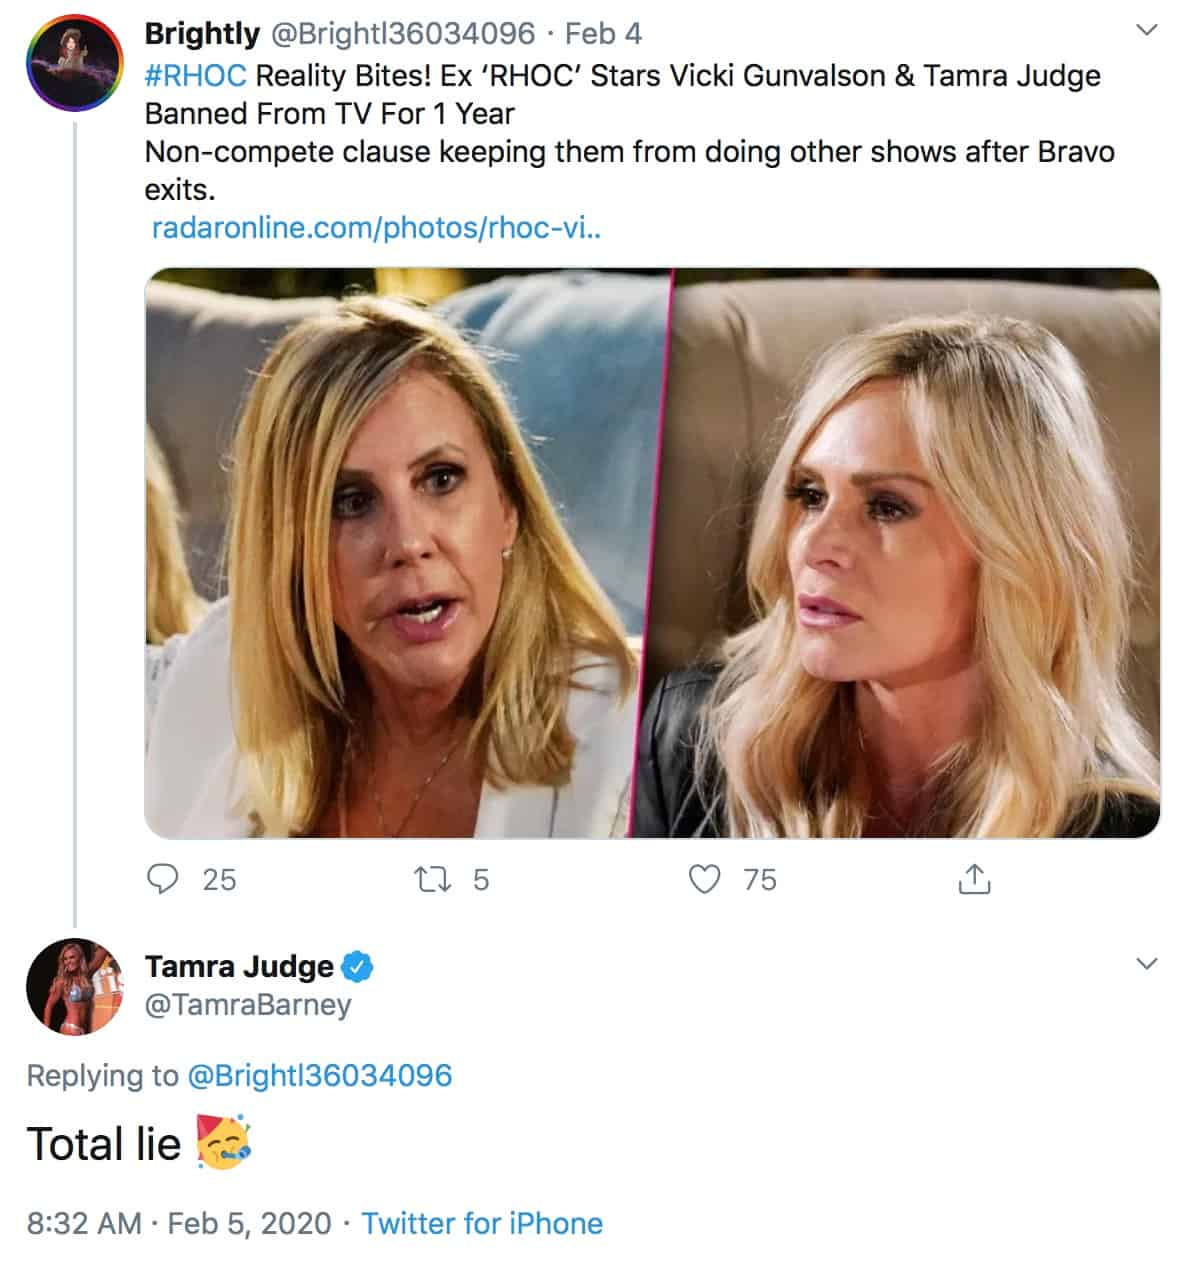 RHOC Tamra Judge Confirms She is Not Banned From Returning to TV